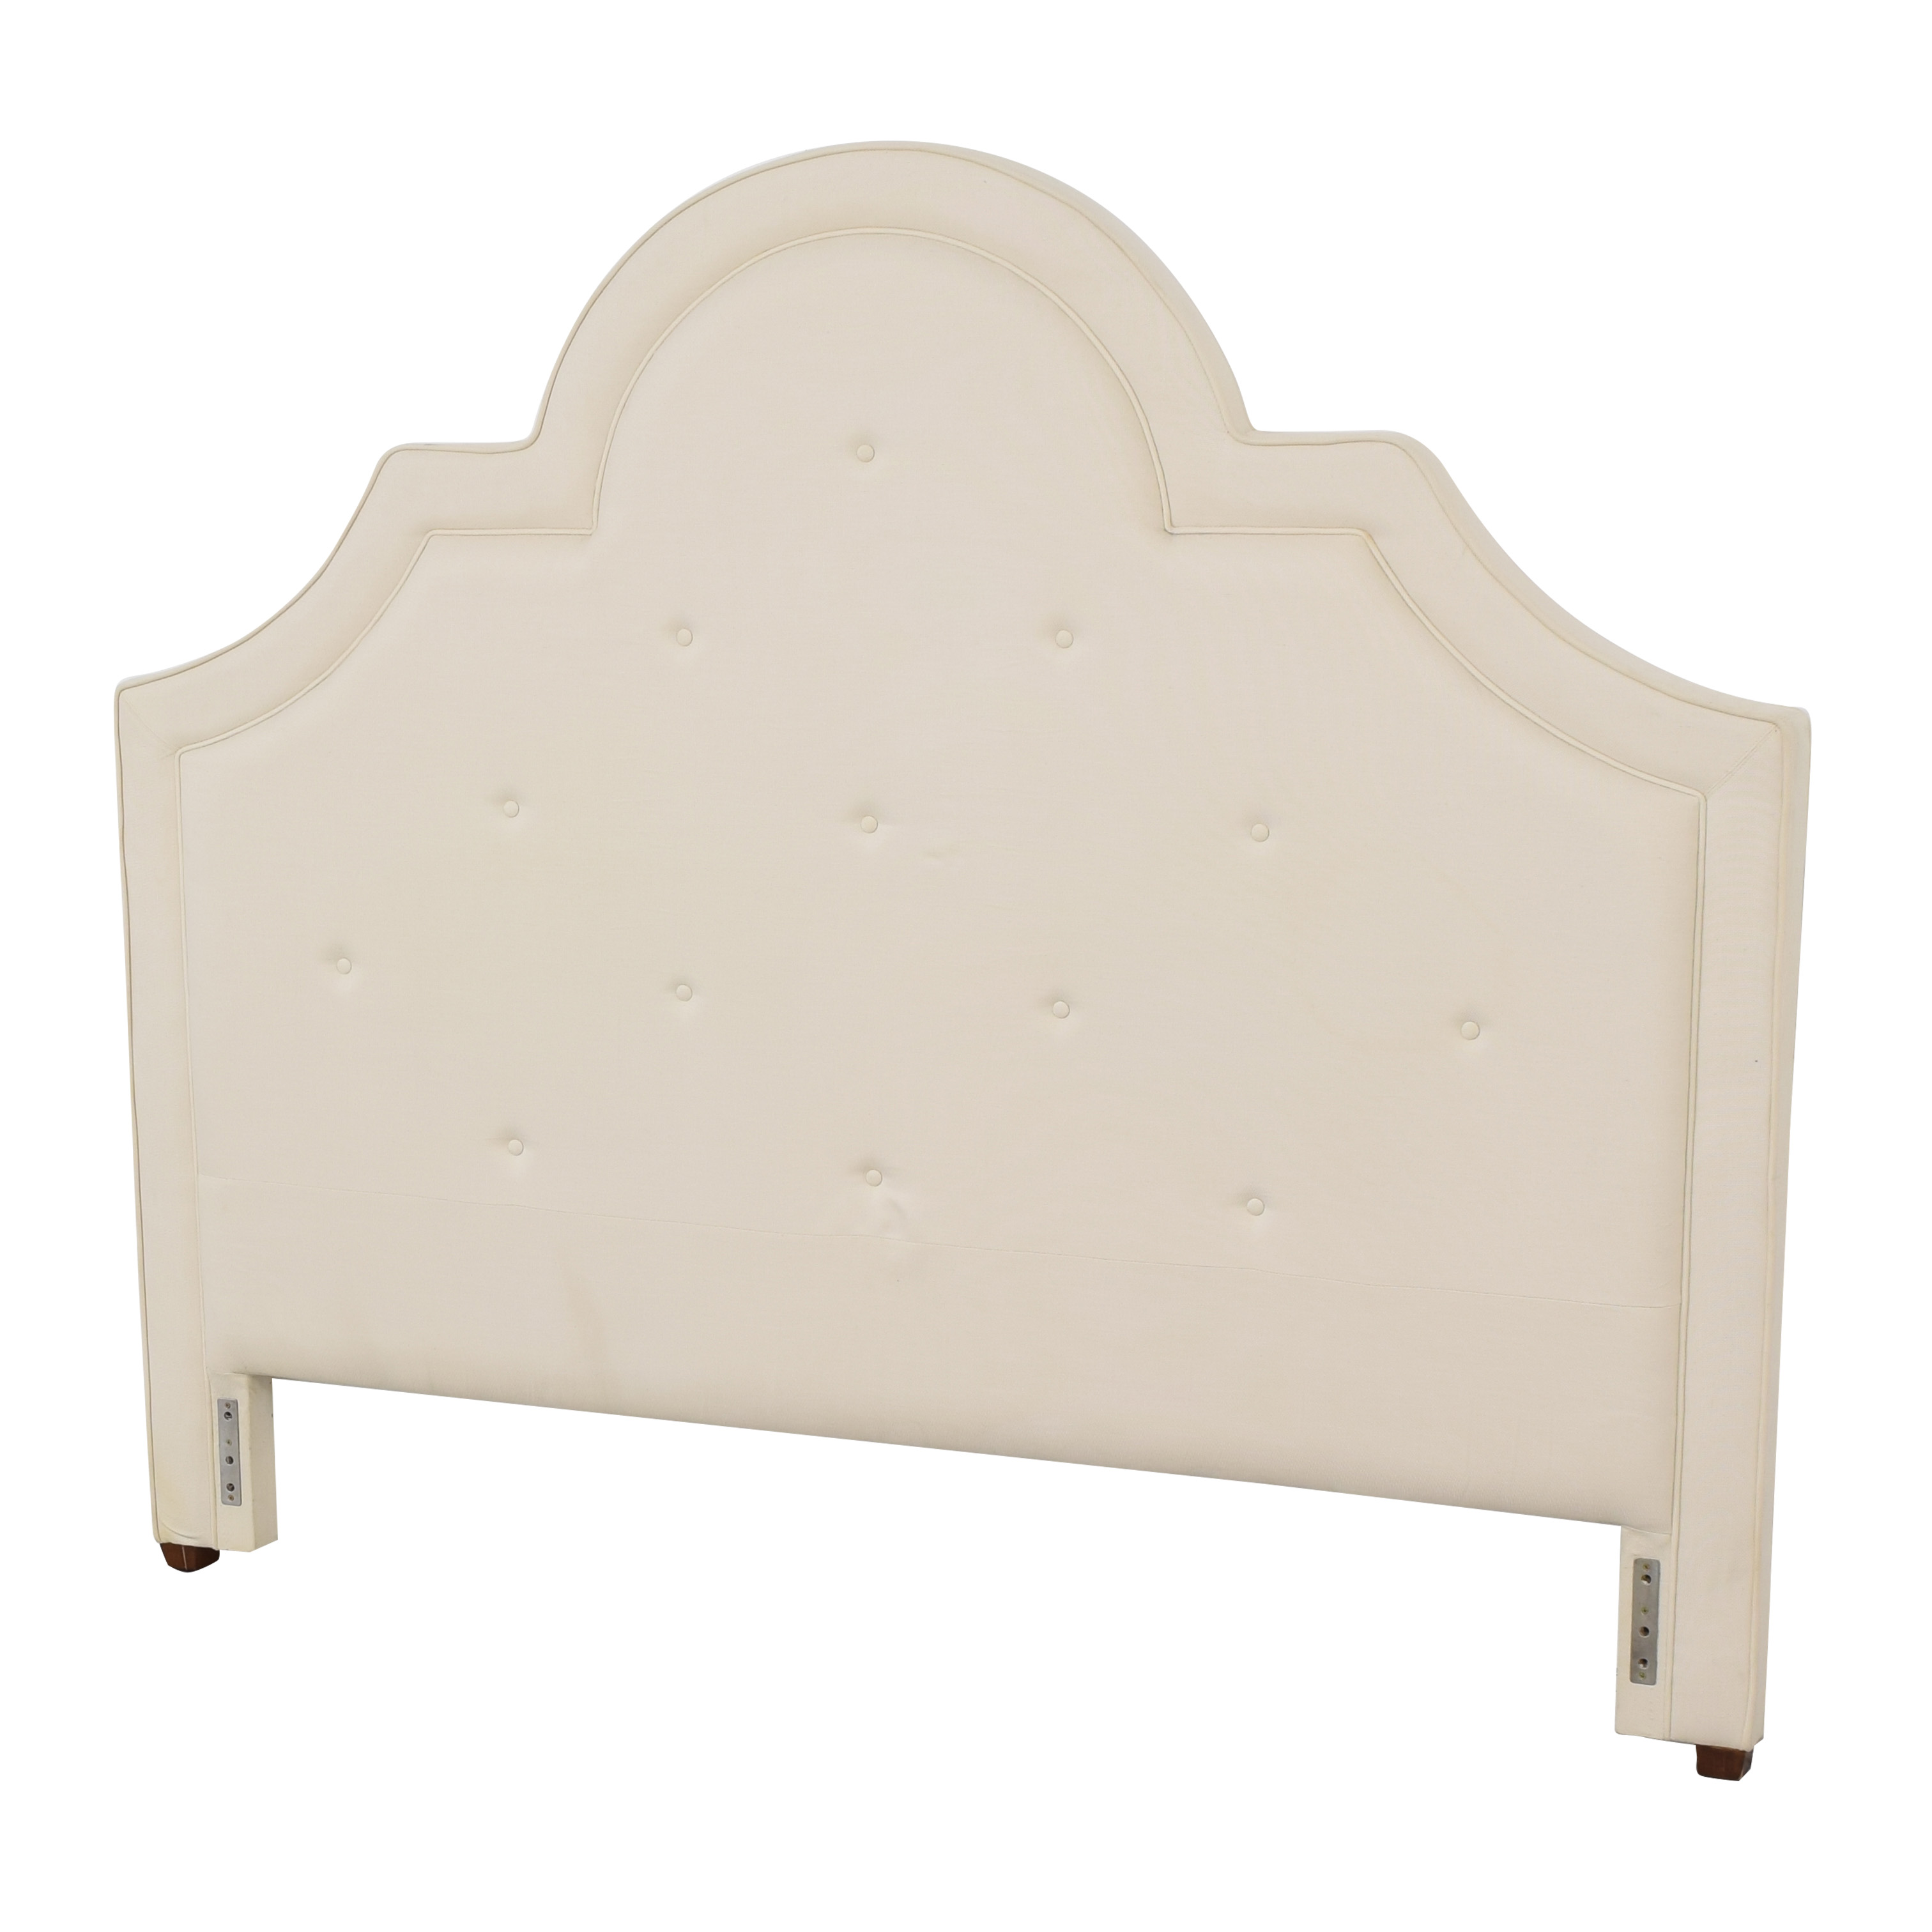 Pottery Barn York Tufted King Headboard / Headboards